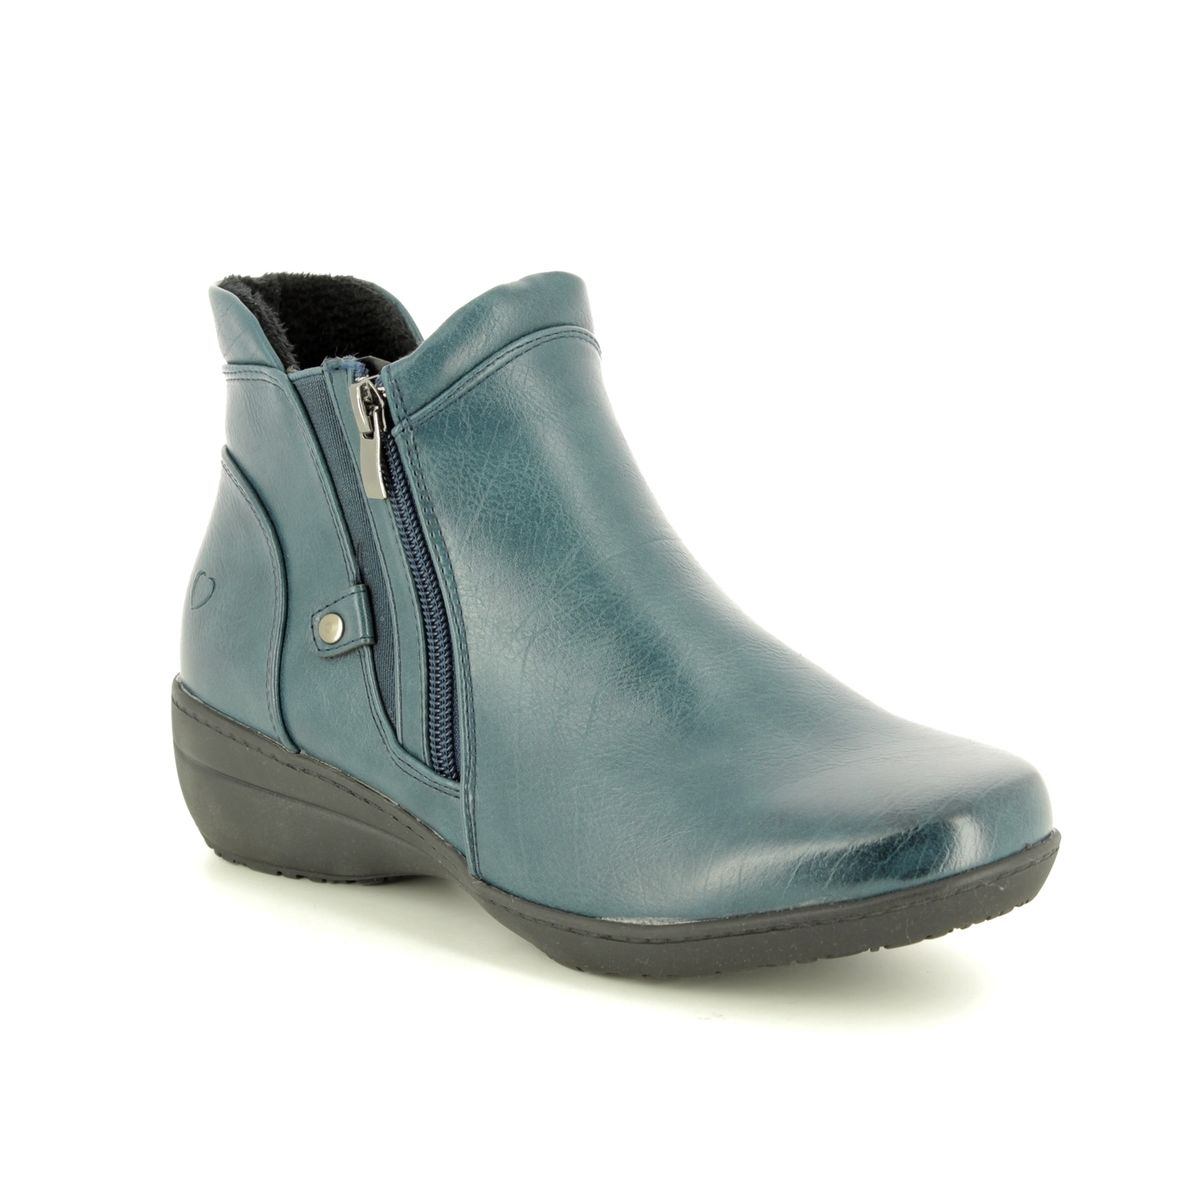 Heavenly Feet Alania Womens Ladies Ankle Boots Grey UK Size